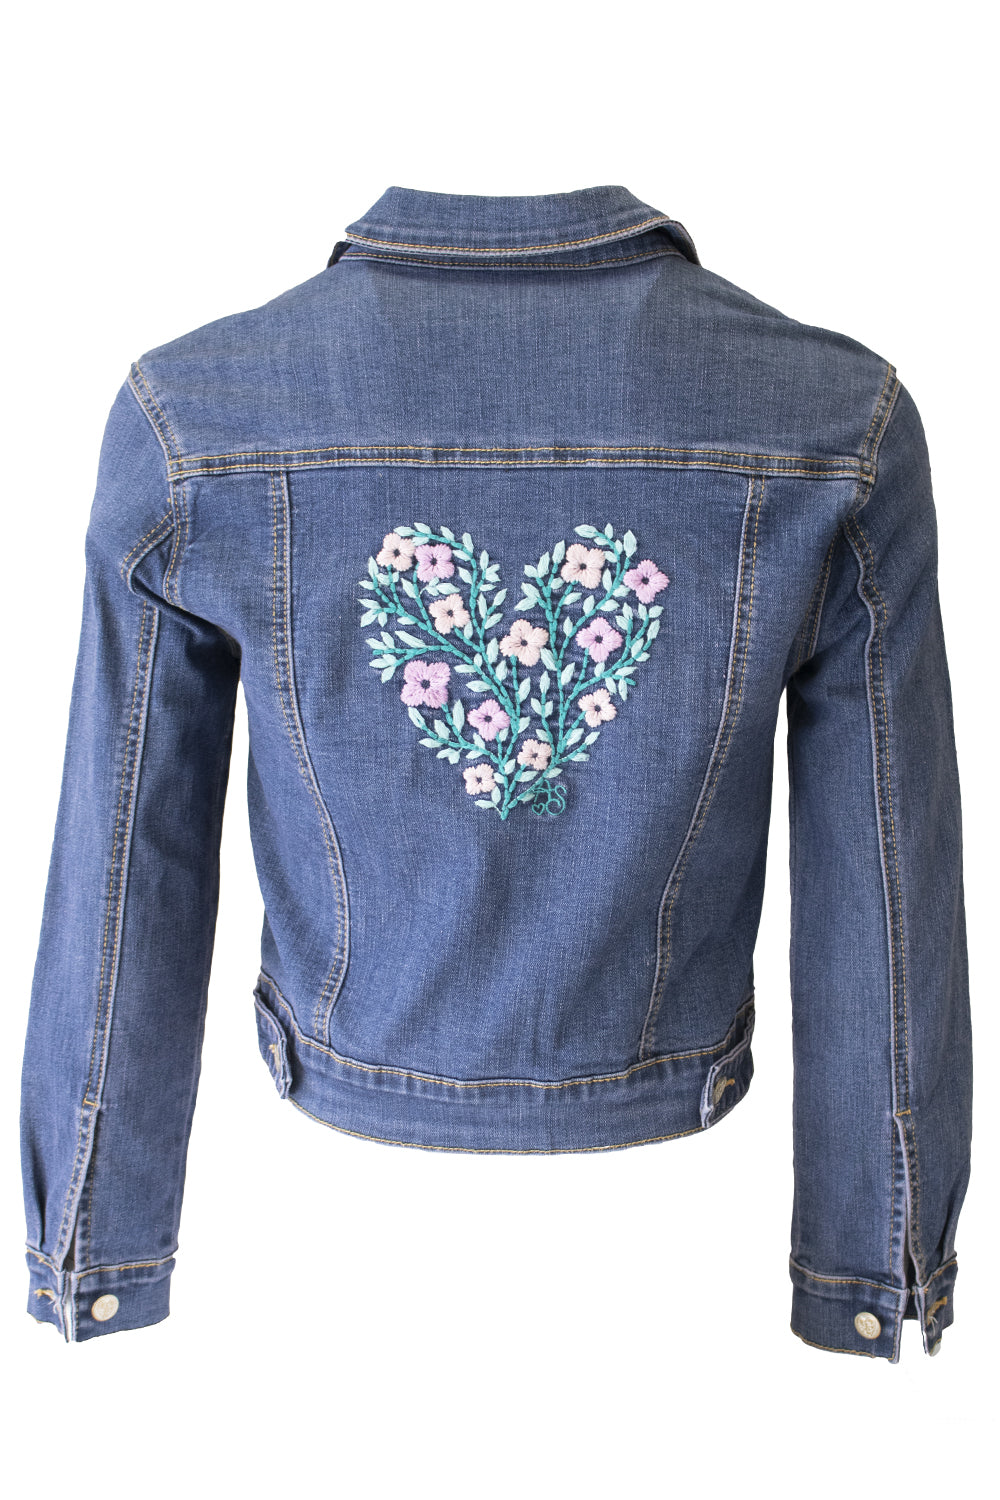 DJ Daisy Jacket | Denim Jacket | Gypsy Fare Collection | Fashion Design | Annah Stretton | New Zealand Fashion Designer